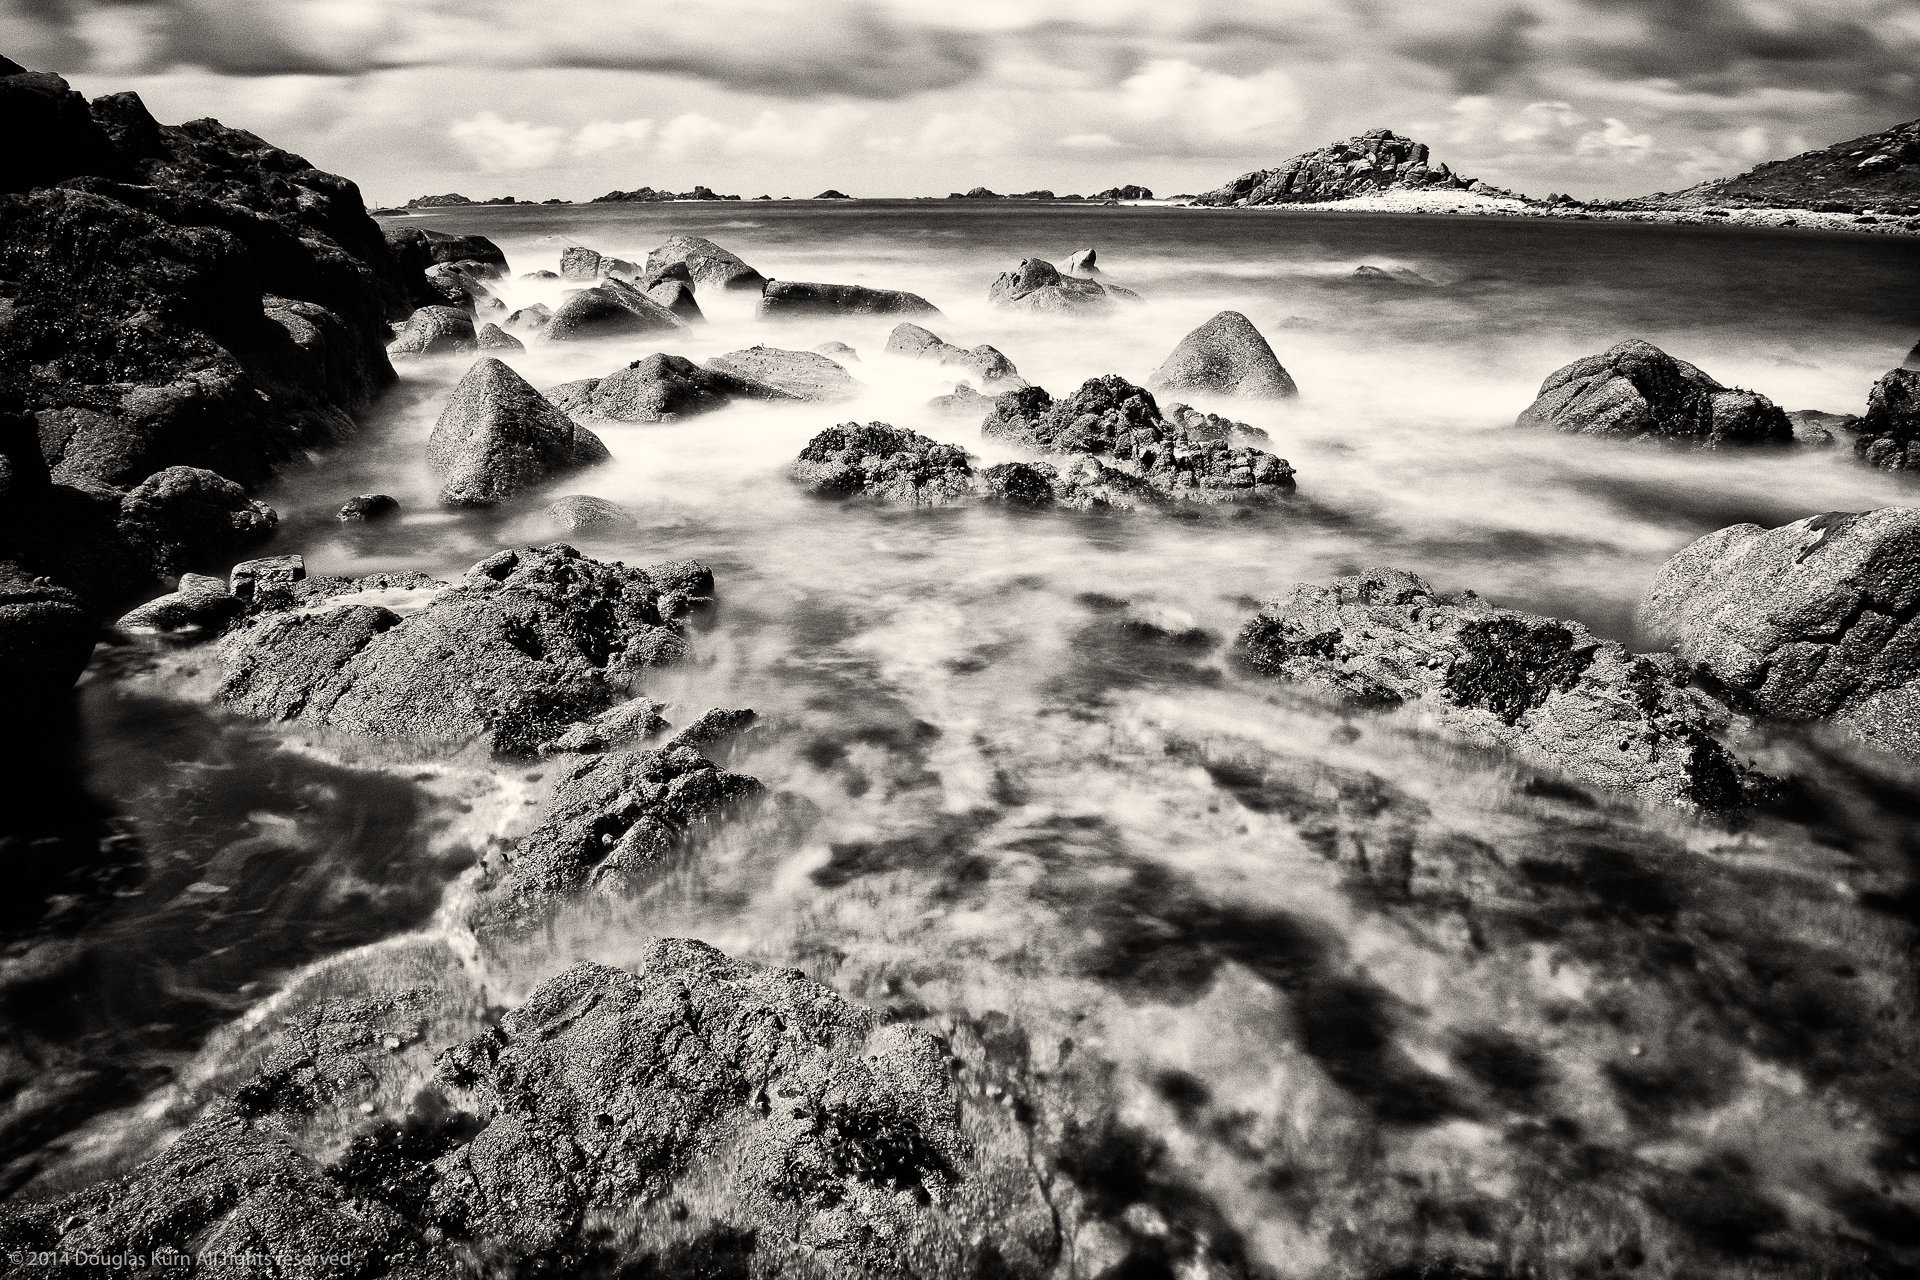 Isles of Scilly Rocks 2